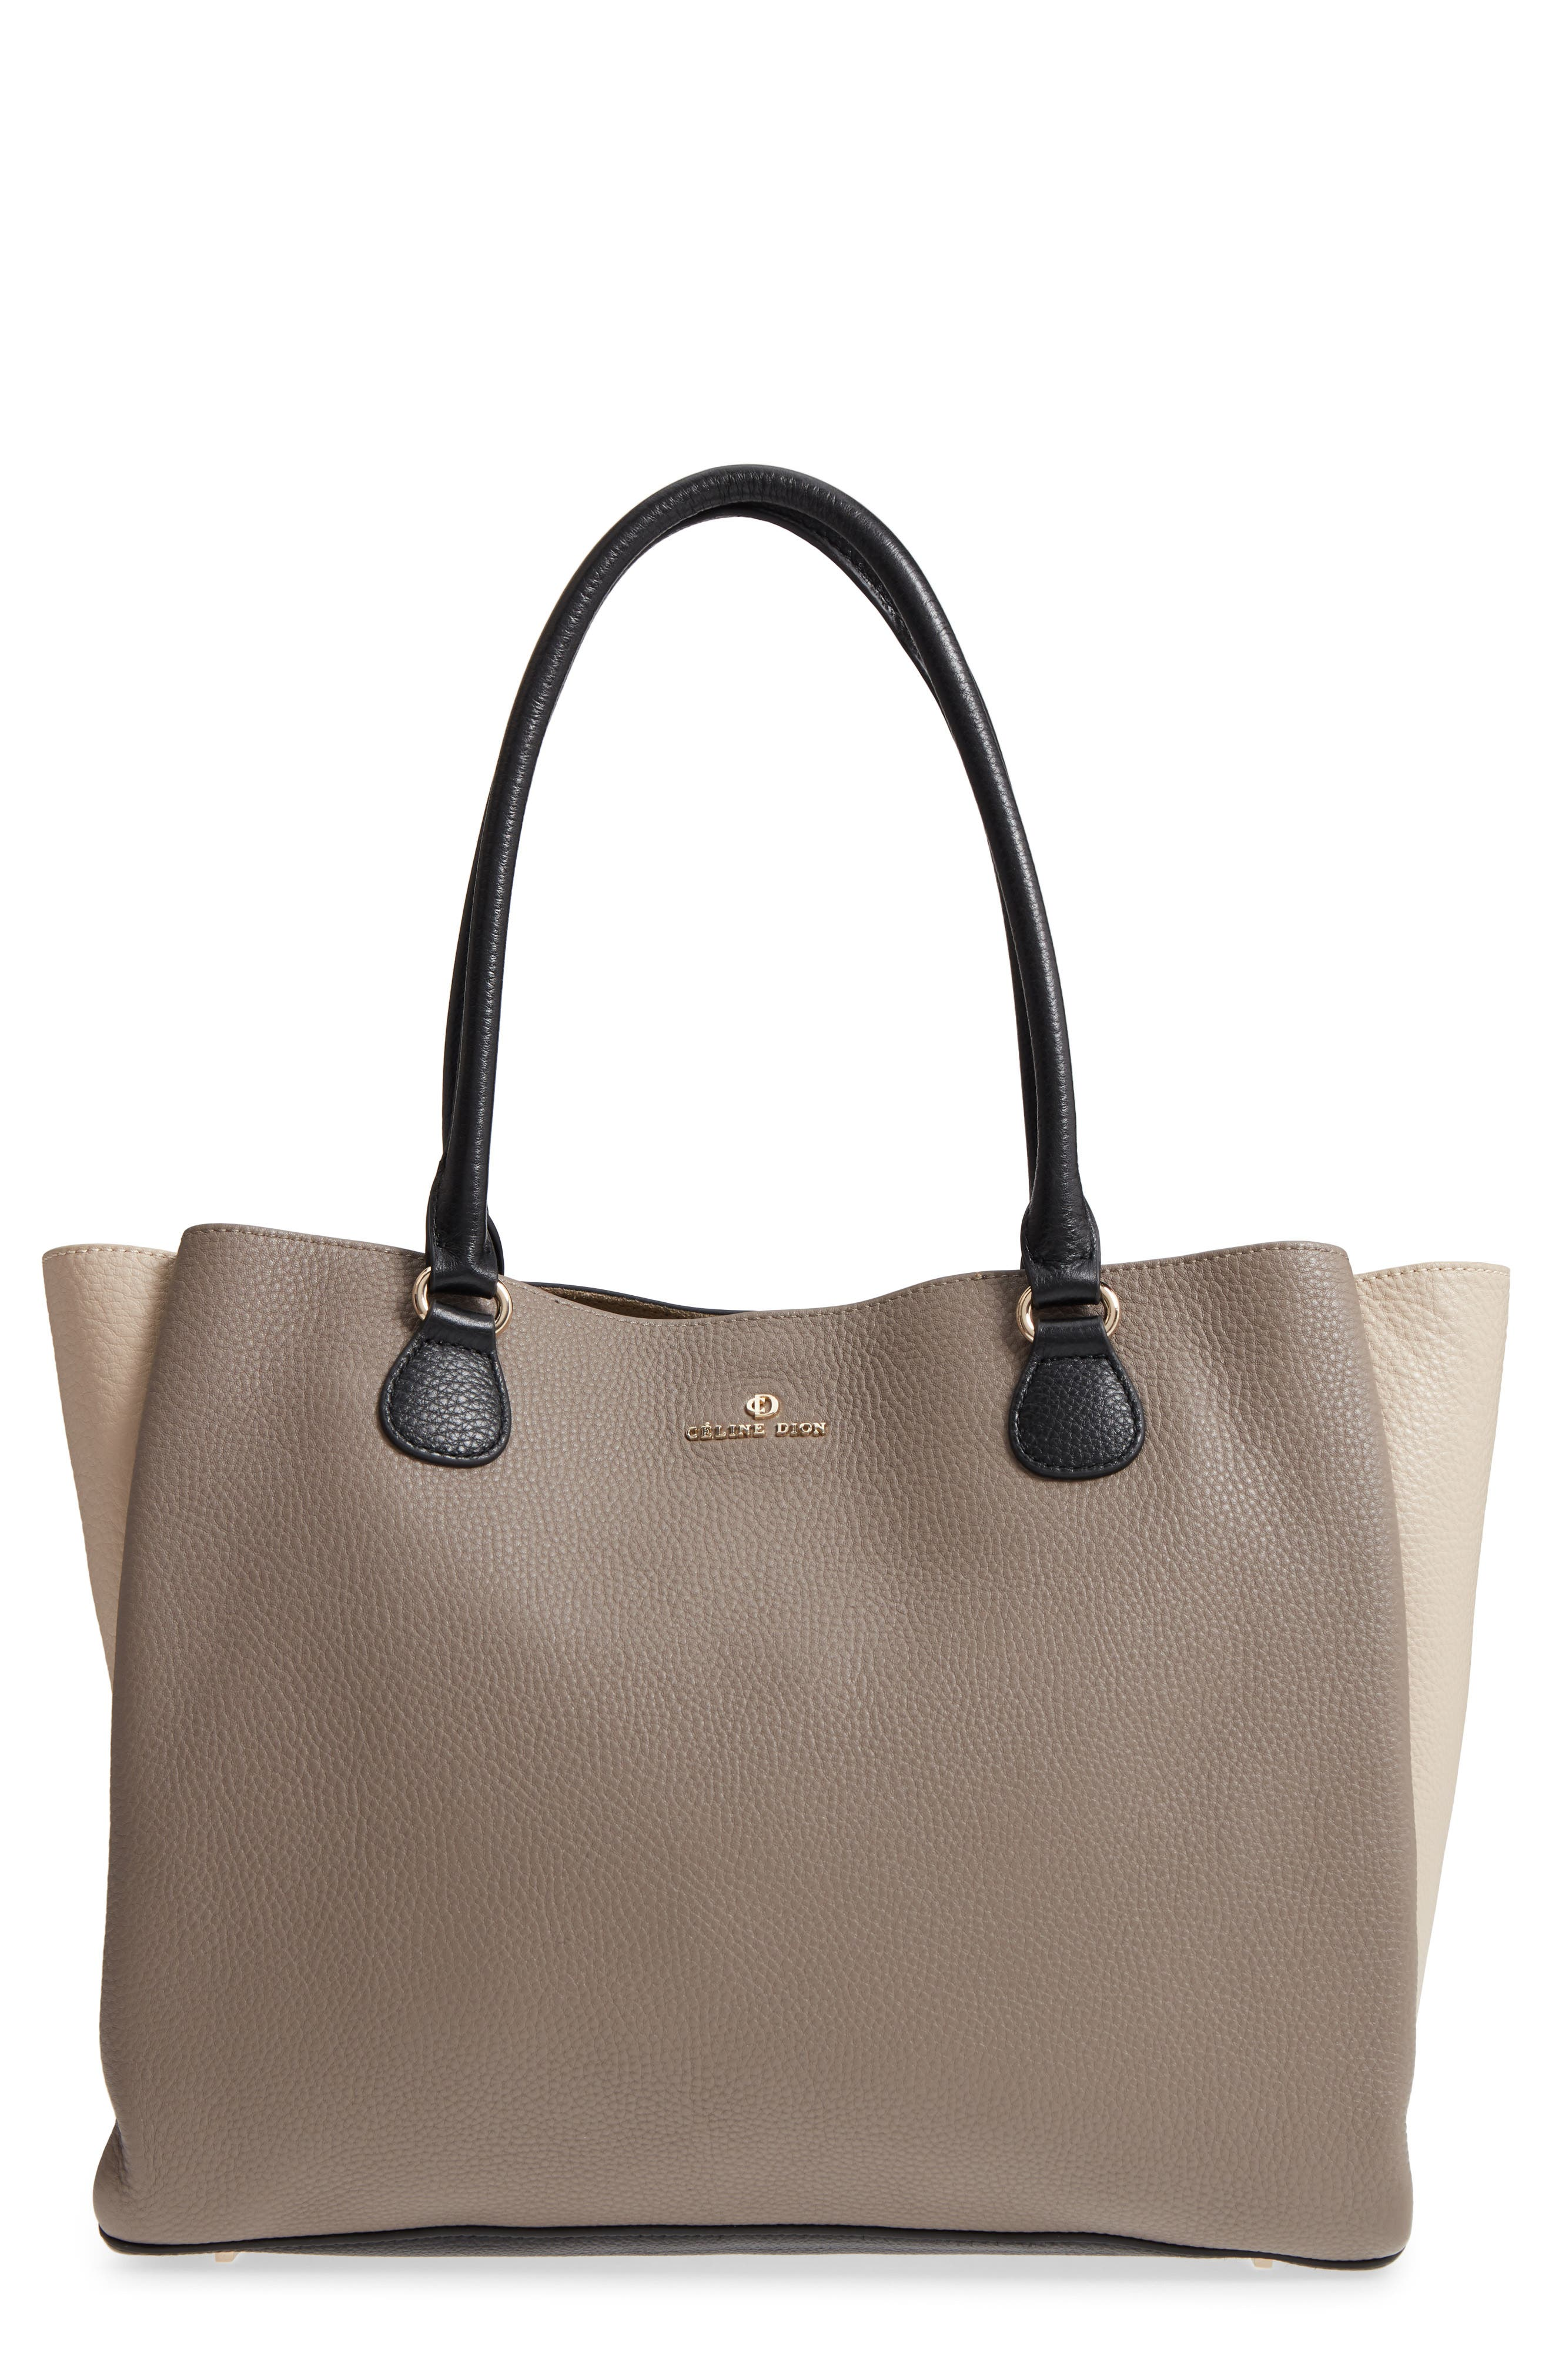 Céline Dion Adagio Leather Tote,                             Main thumbnail 1, color,                             250